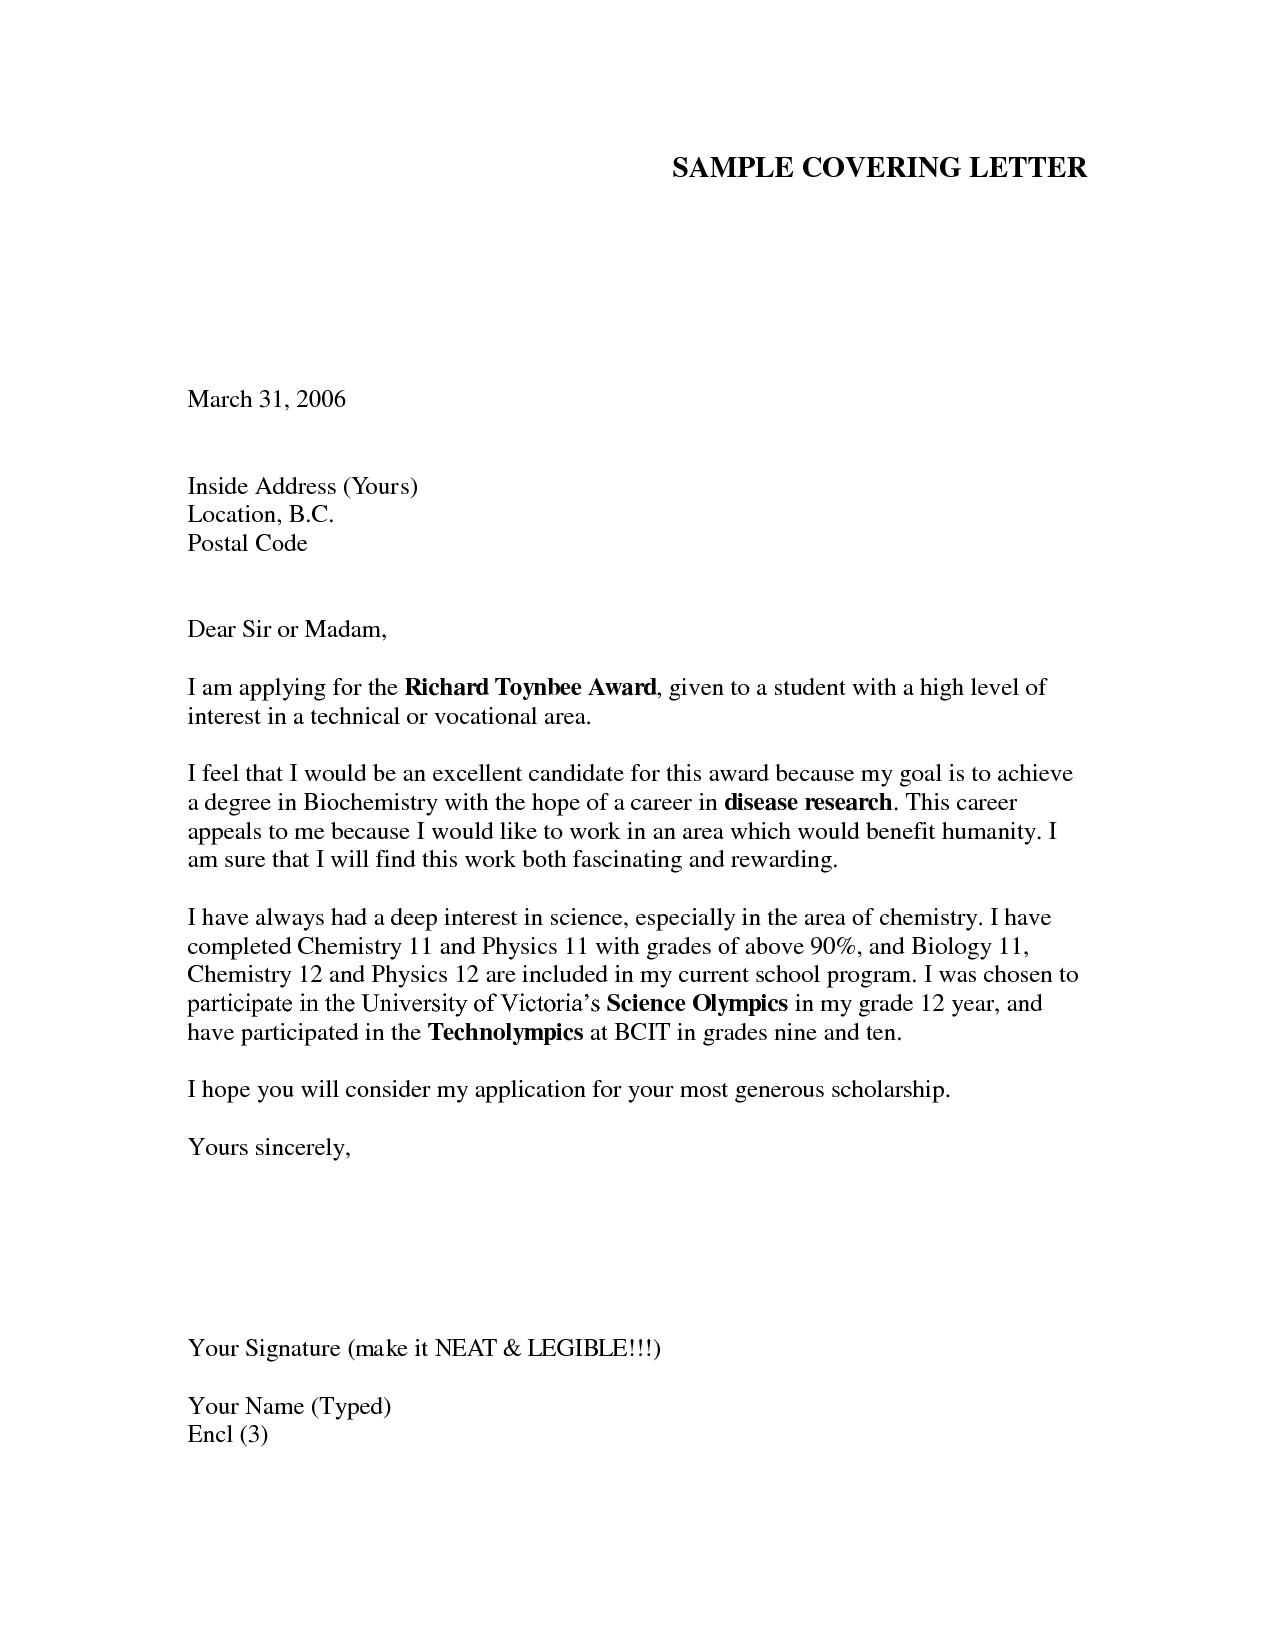 Valid Cover Letters Examples For Jobs You Can Download For Full Letter Resume Template Here Htt Job Cover Letter Simple Cover Letter Application Cover Letter